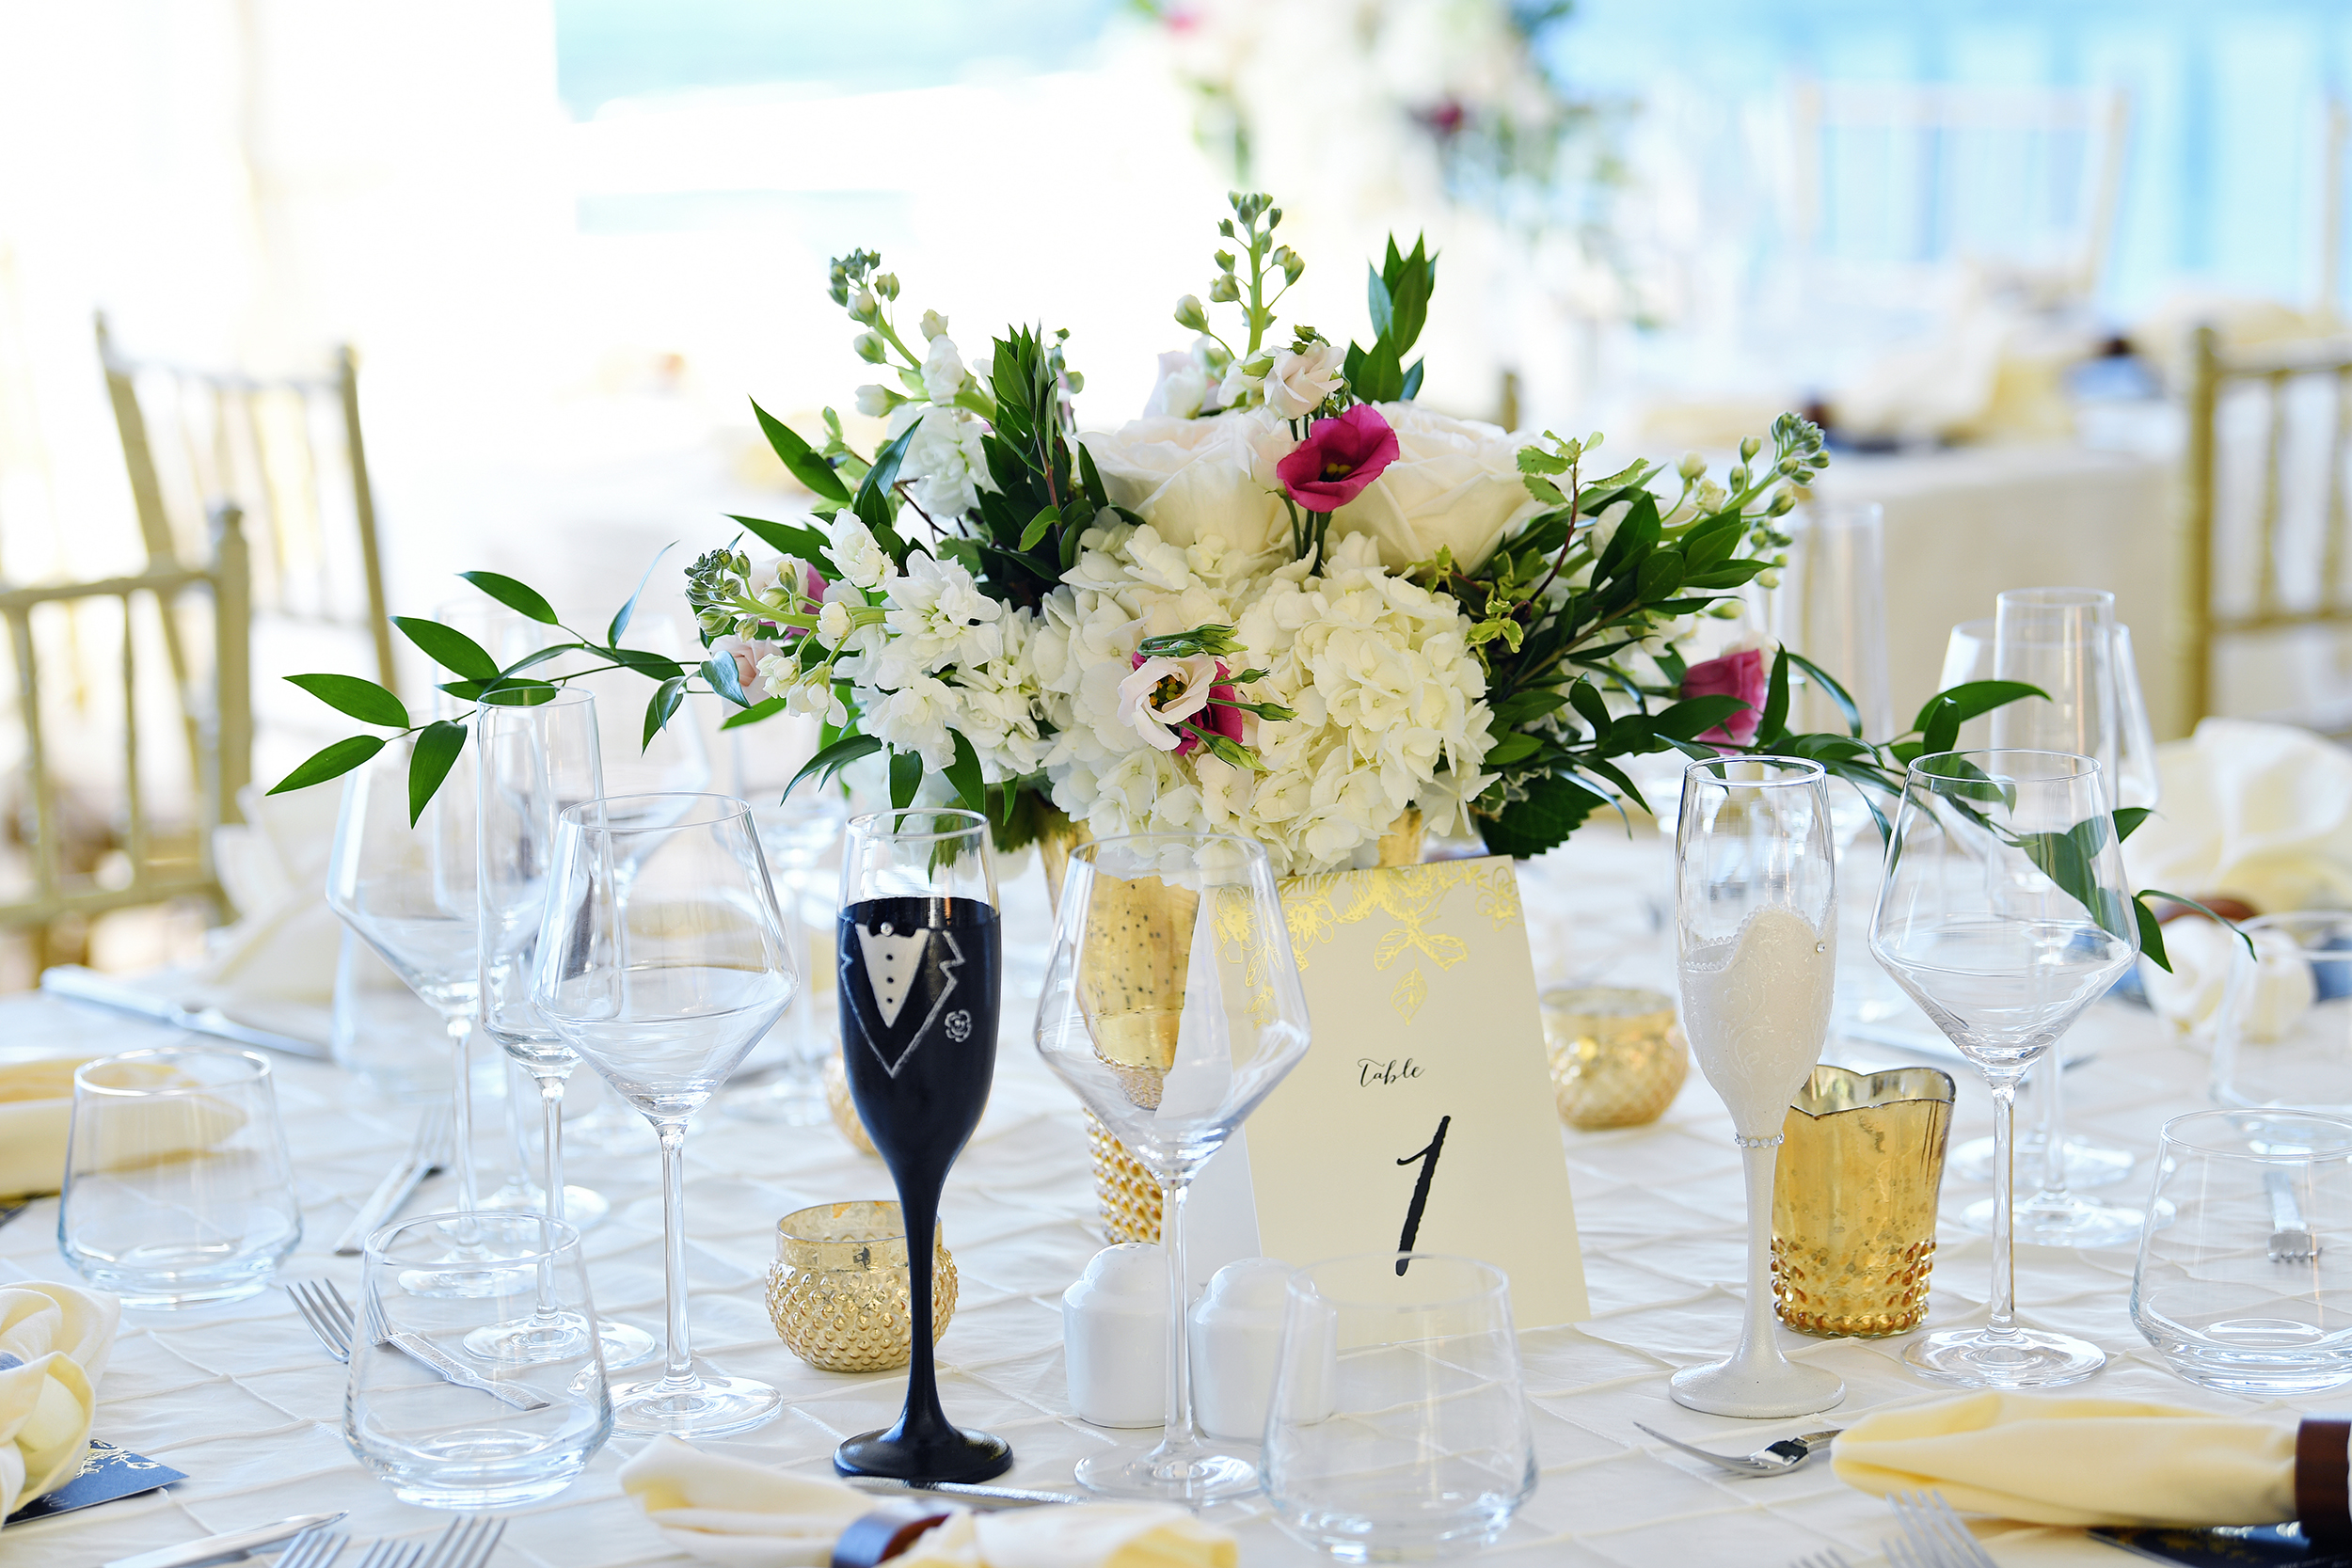 Villa Norbu Weddings - places to have a wedding on St. Thomas